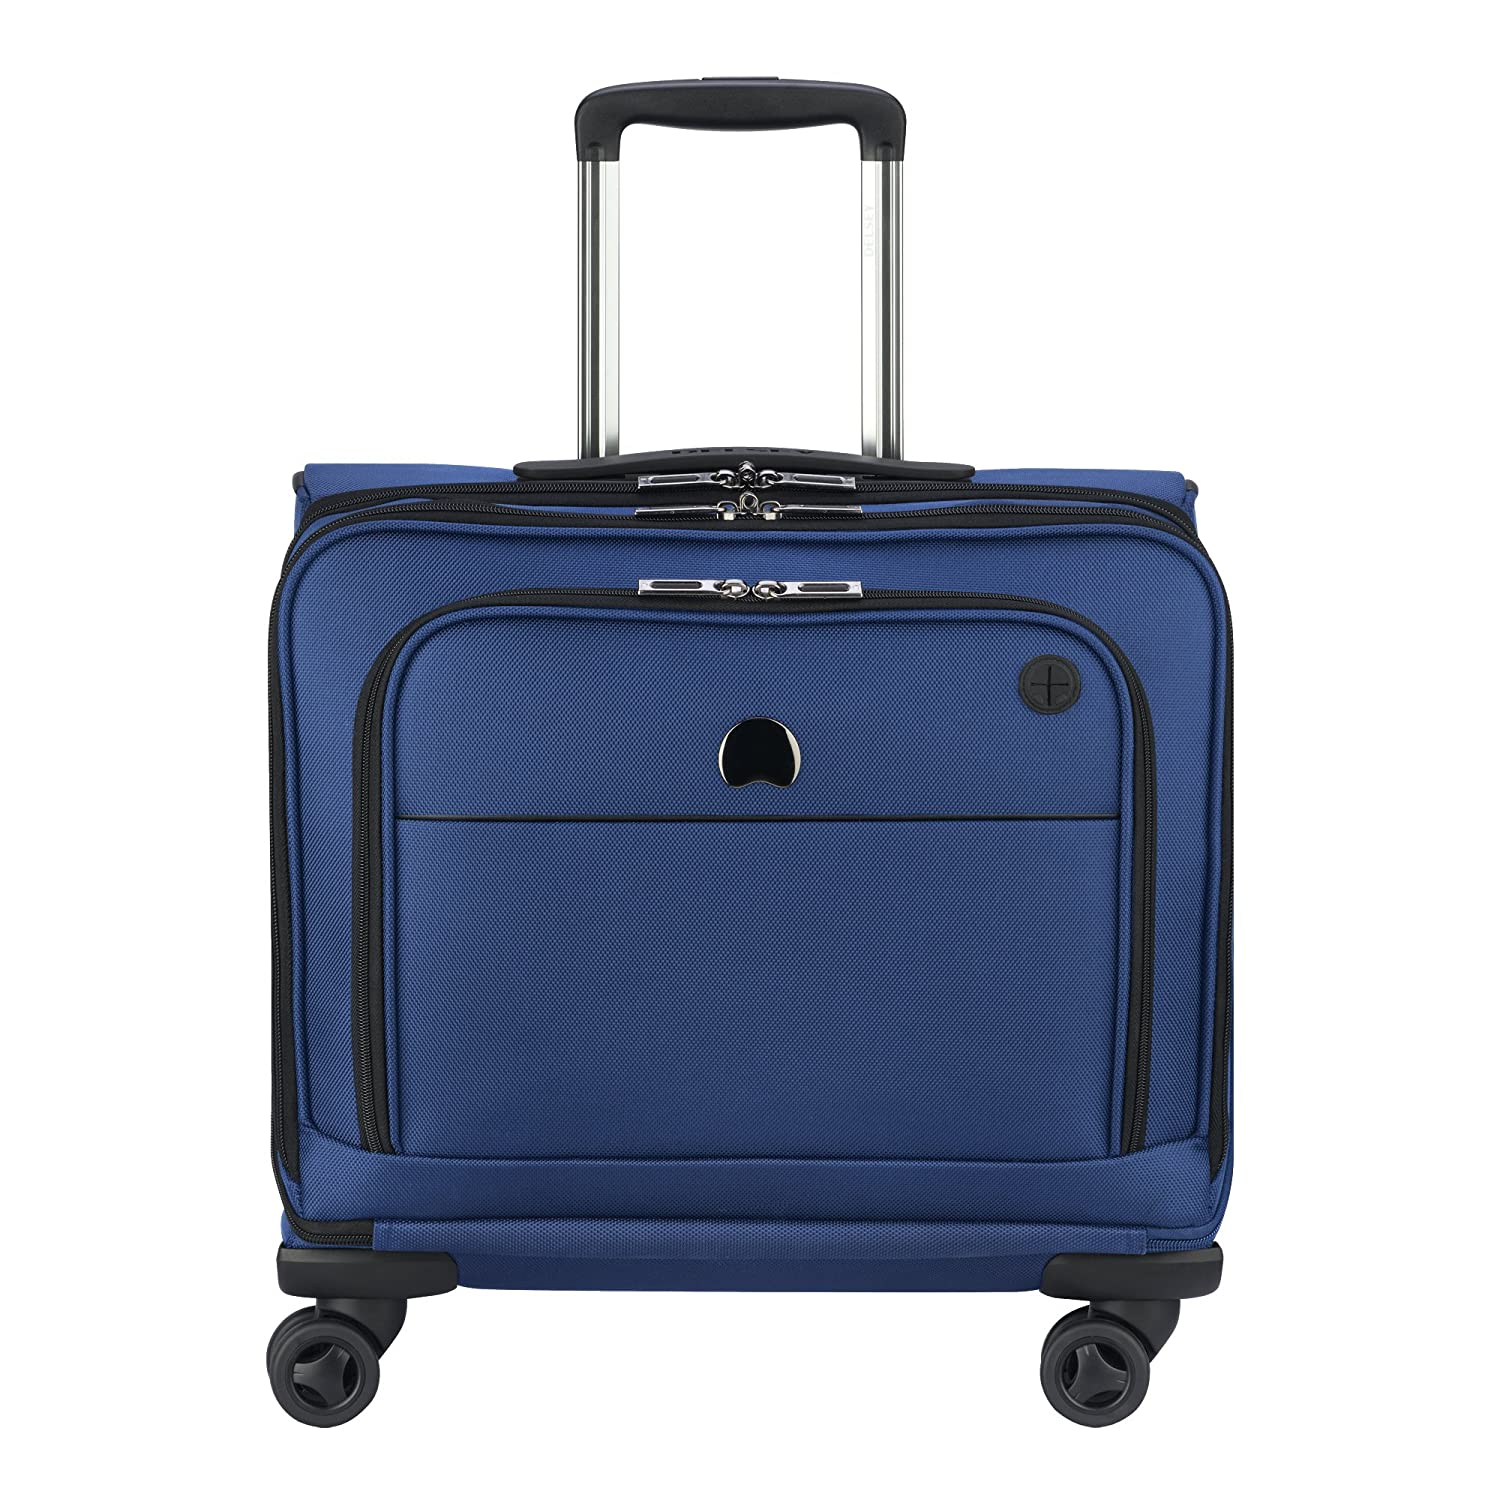 Delsey Luggage 4 Wheel Spinner Mobile Office-Exclusive Briefcase, Blue, One Size Inc. 40205545202